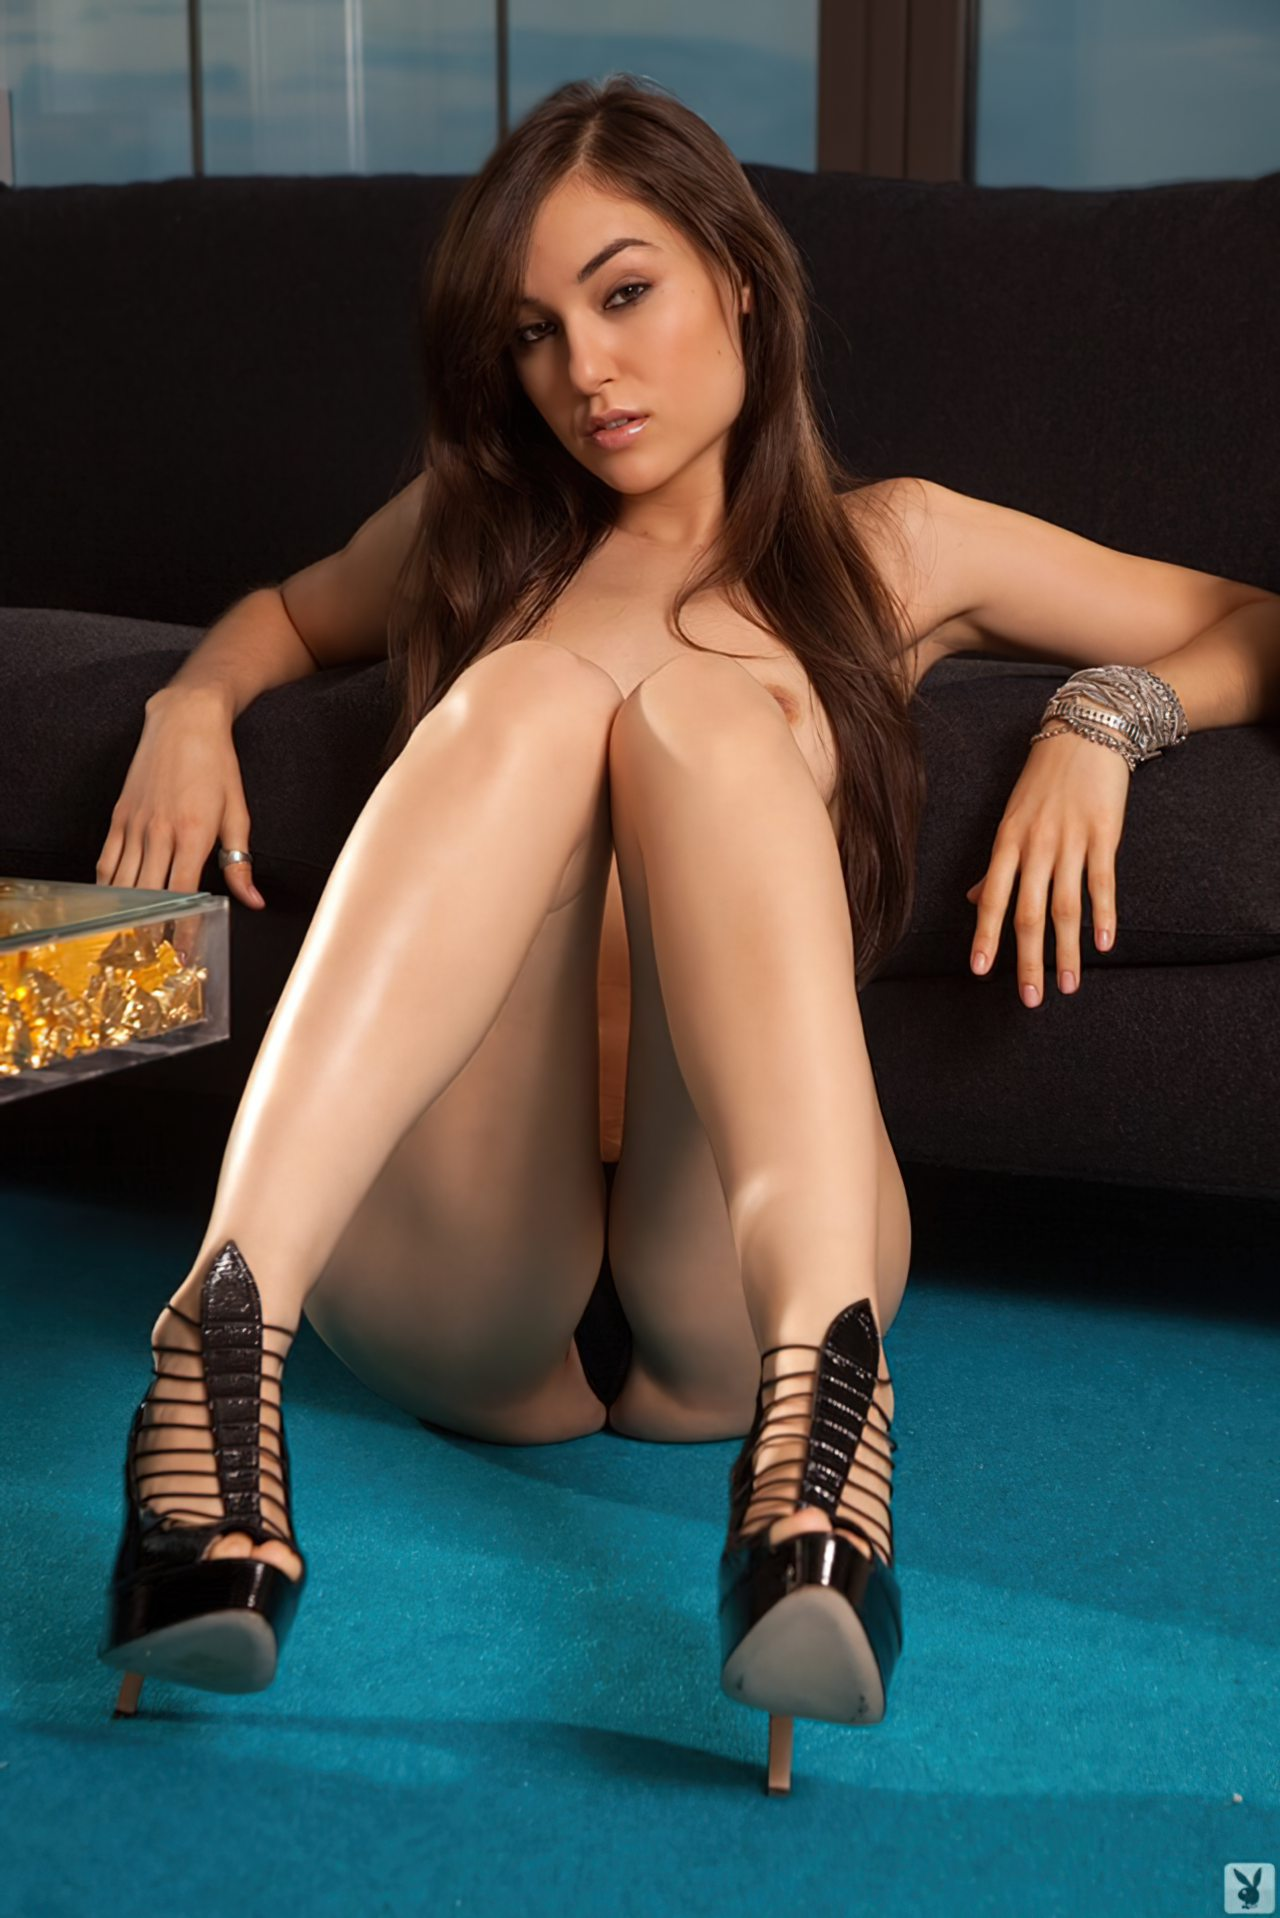 Sasha Grey na Playboy (36)